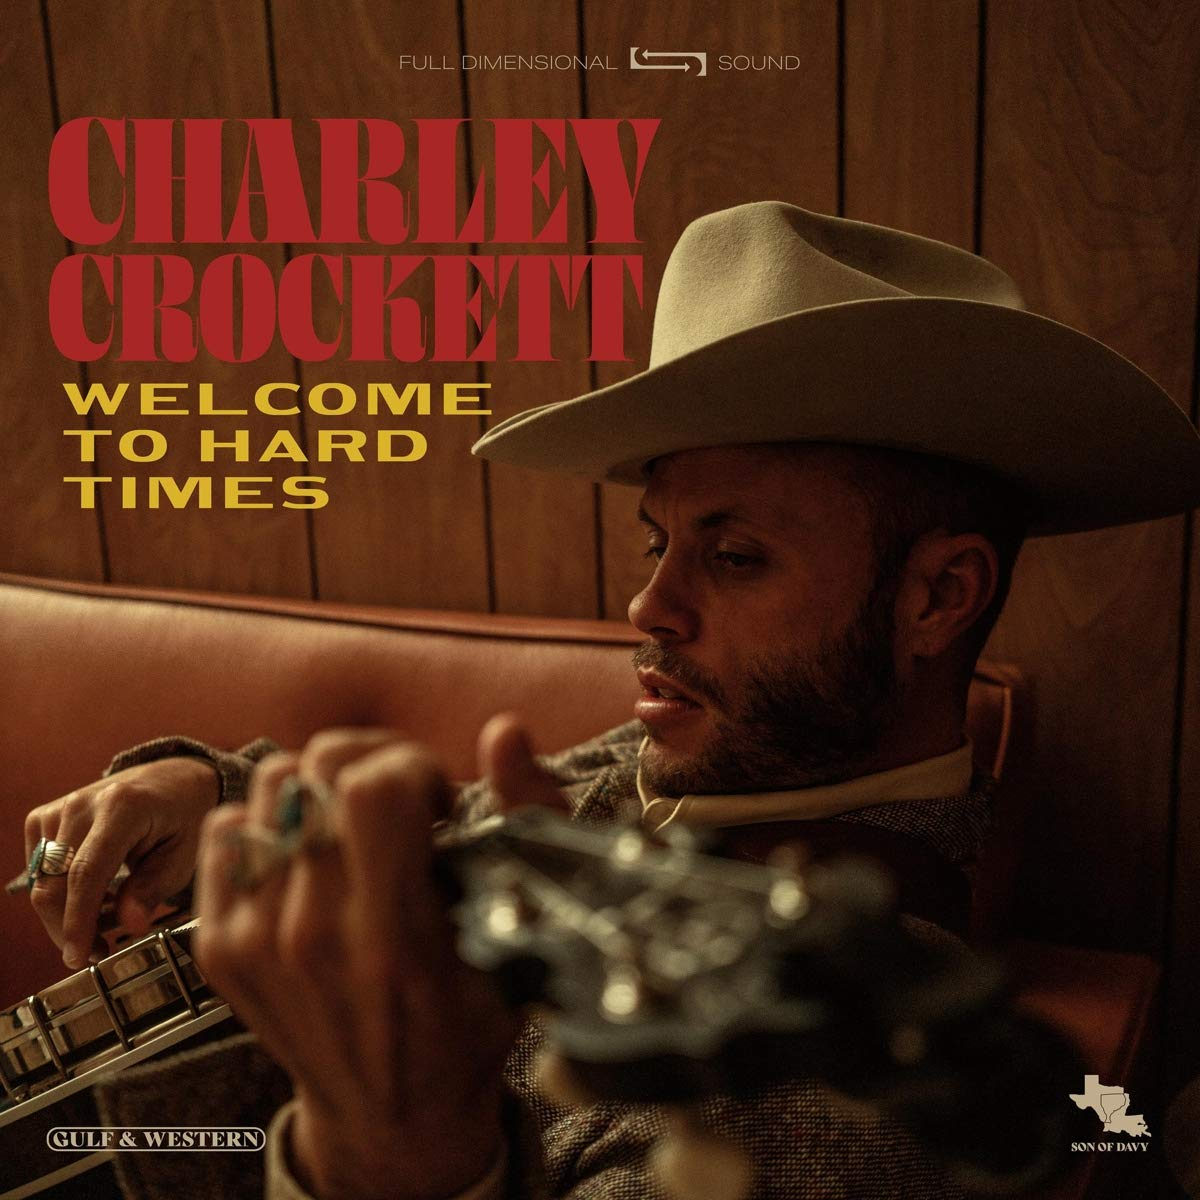 Charley Crockett: Welcome to Hard Times